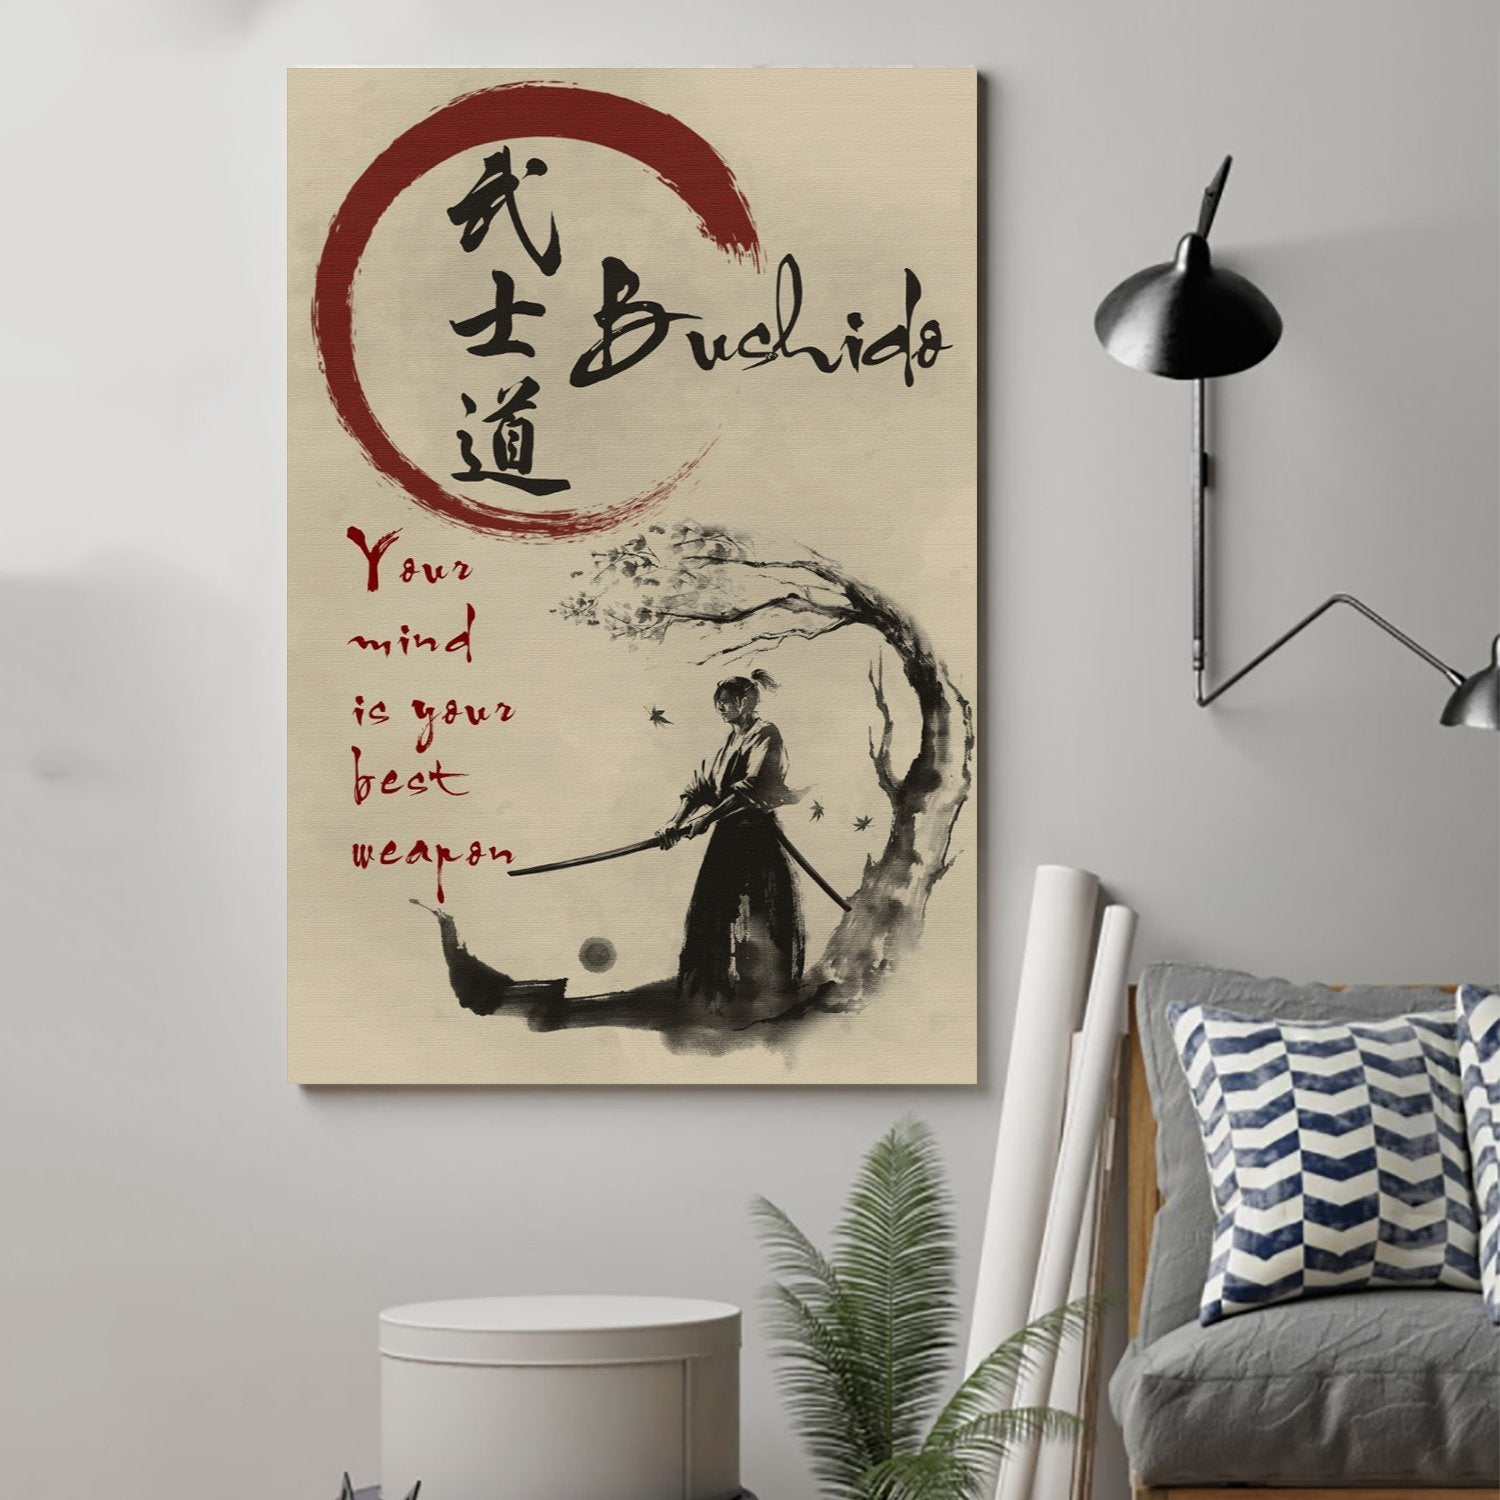 (cv99) samurai Poster - your mind is your best weapon